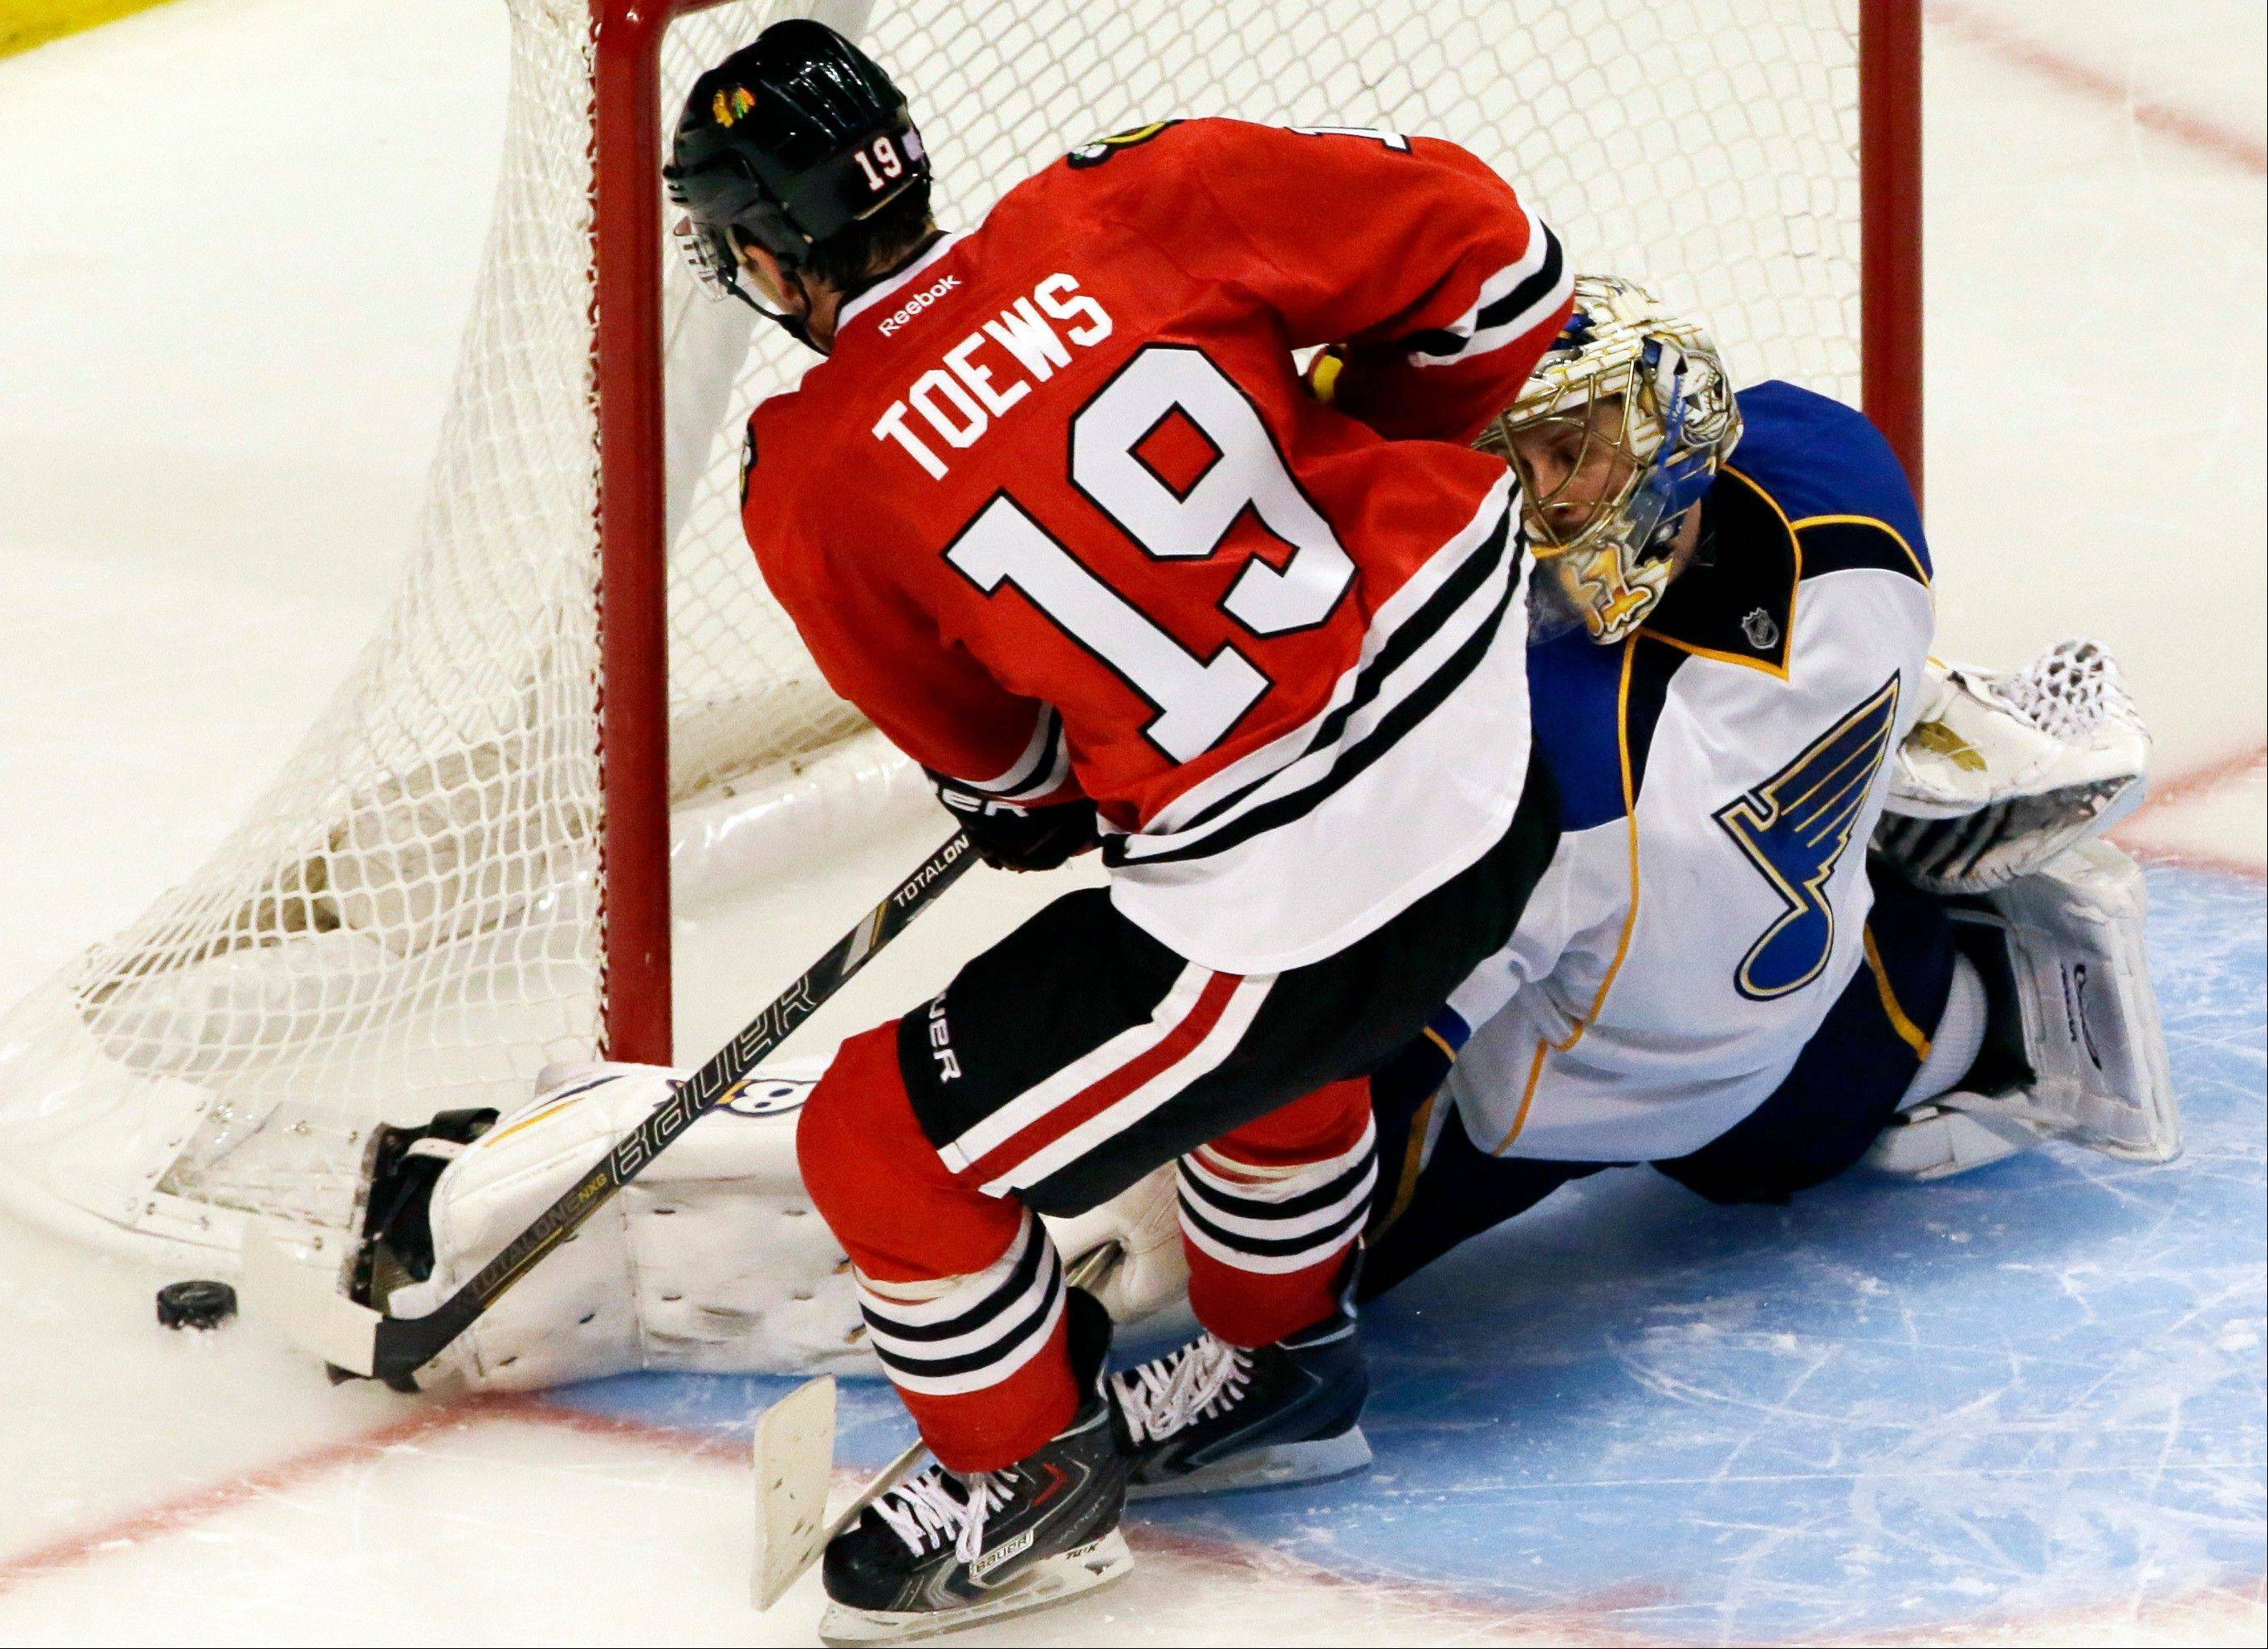 St. Louis Blues goalie Jaroslav Halak (41) blocks a shot by Blackhawks captain Jonathan Toews on Thursday. On Friday, coach Joel Quenneville broke up the scoring lines, splitting Toews and Patrick Kane.